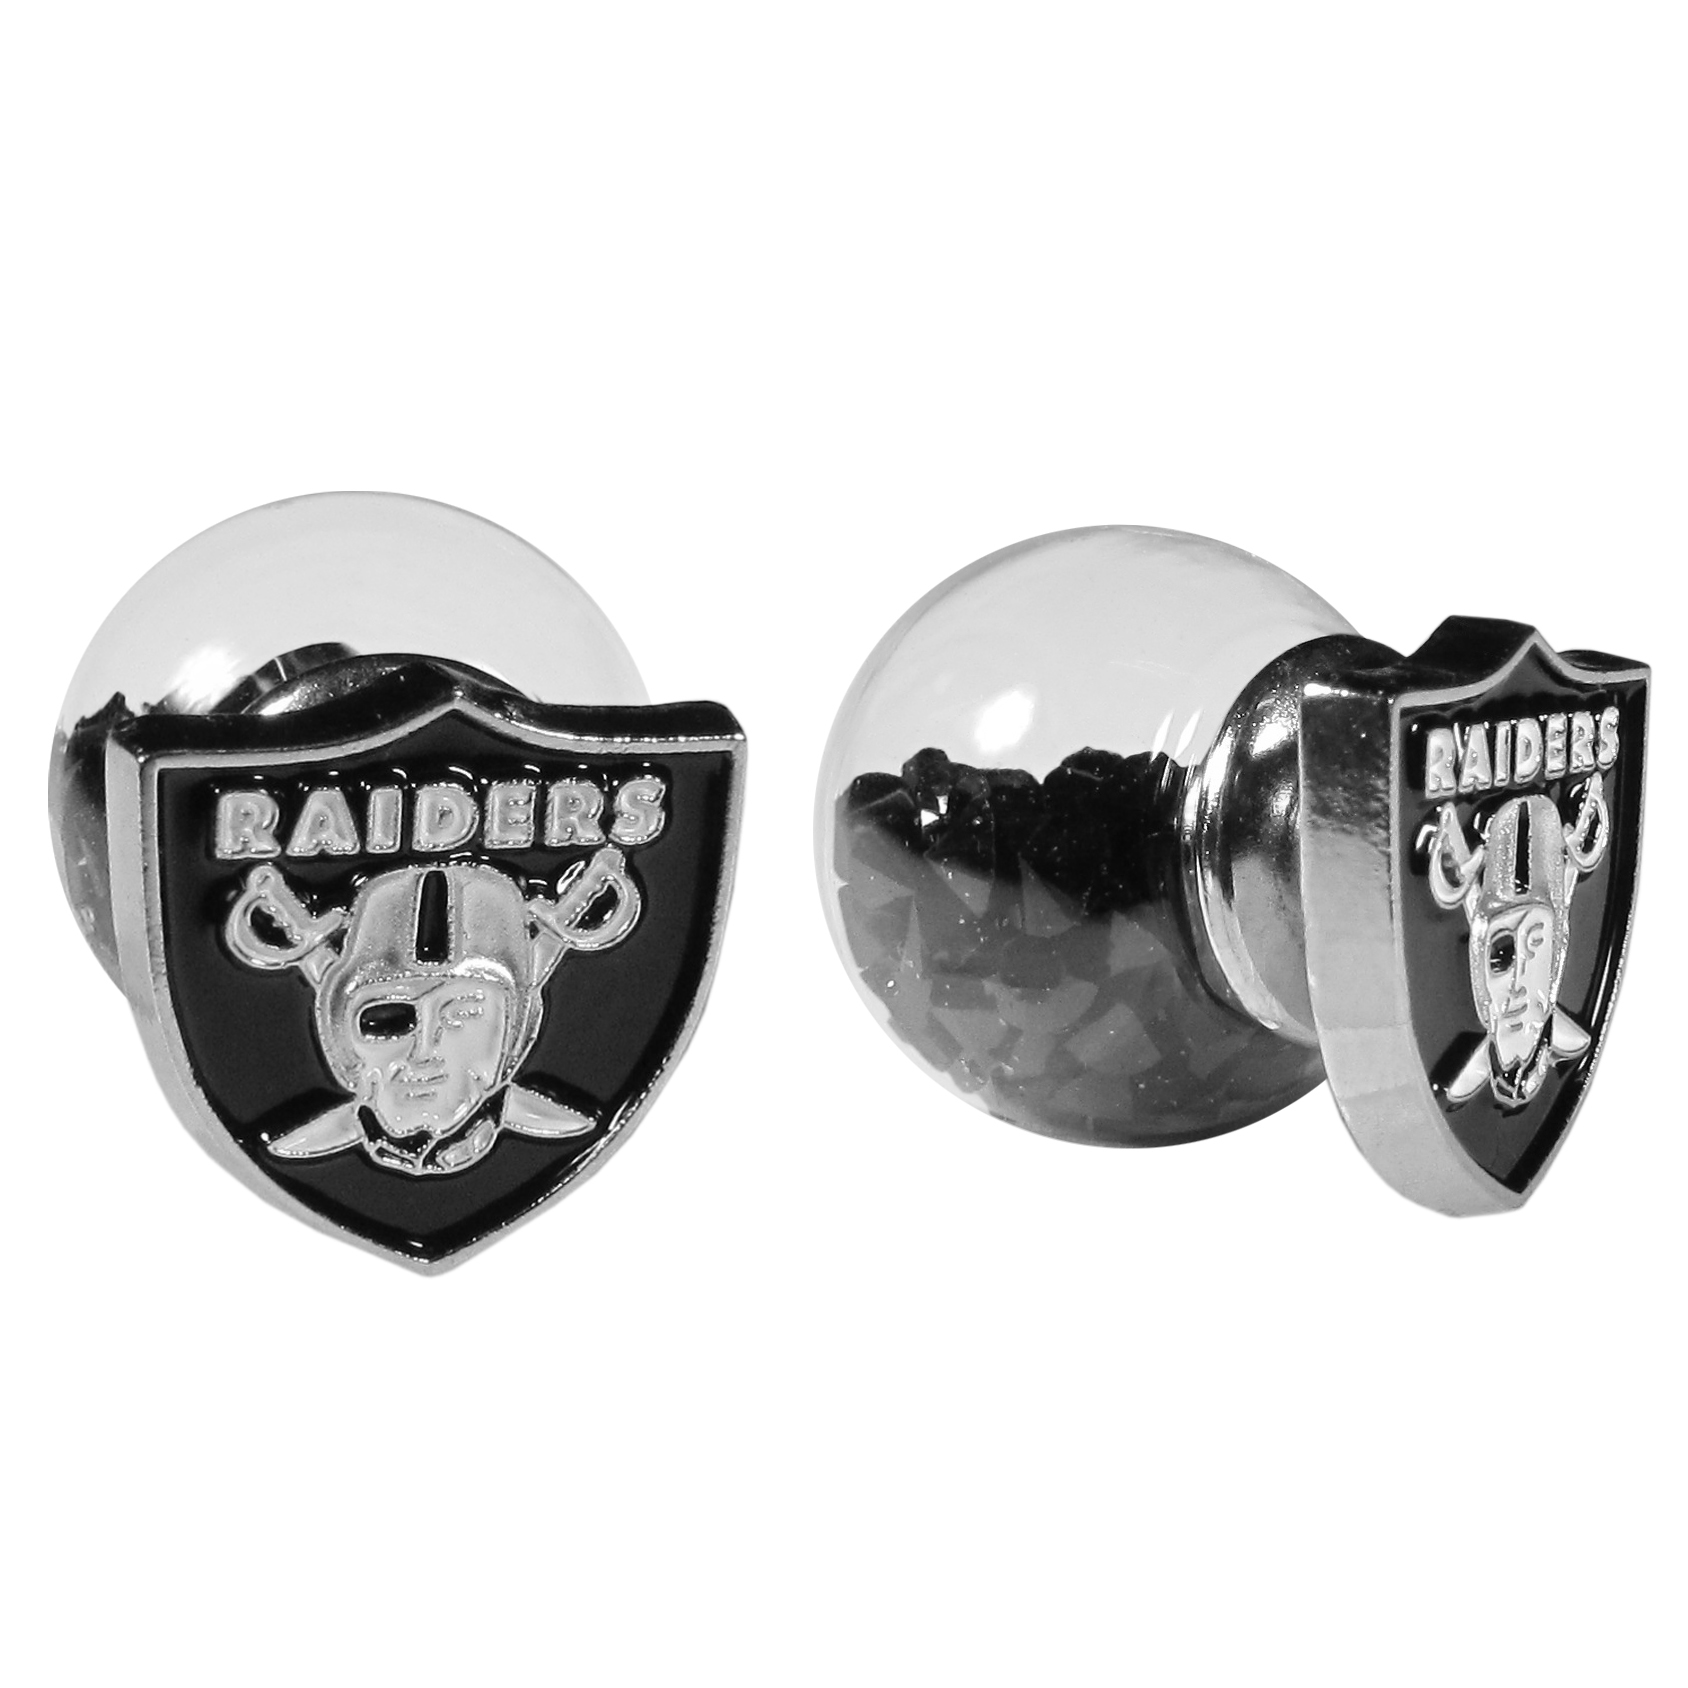 Oakland Raiders Front/Back Earrings - Get in on one of the most popular trends in jewelry, front and back earrings! This must-have style is all of over the red carpets and we taken this contemporary look and paired it with your love of the Oakland Raiders! The front of the earring is a sporty team logo and the back of these eye-catching earrings is a glass ball filled with colored crystal beads. This piece is perfect for a fashion-forward fan, with bold taste and trend-setting style.